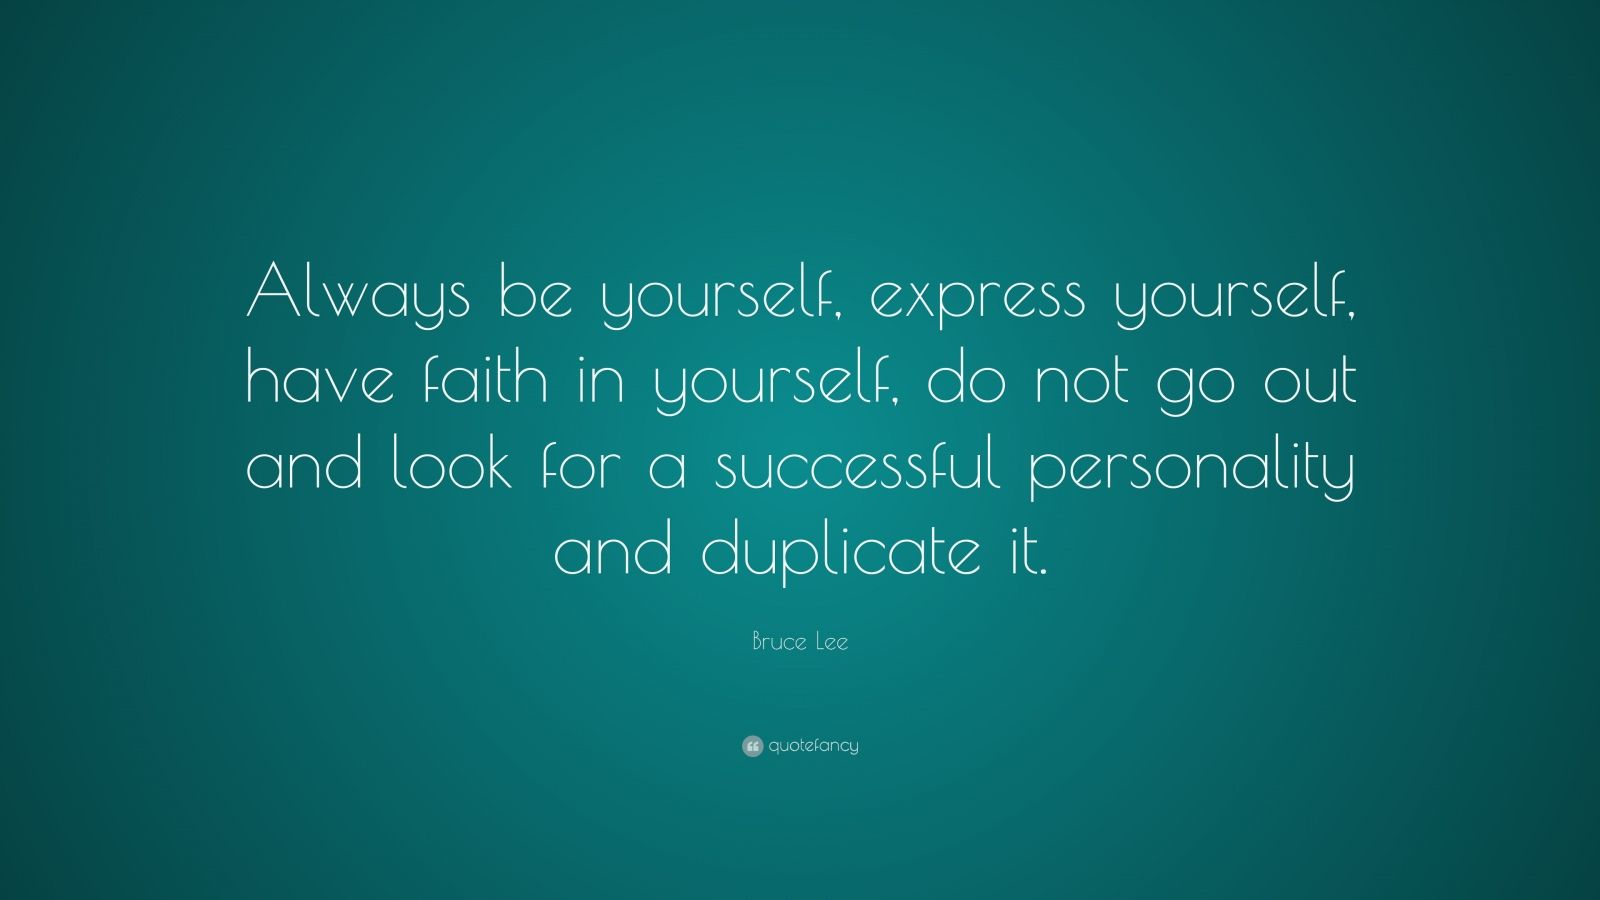 """Bruce Lee Quote: """"Always be yourself, express yourself, have faith in yourself, do not go out and look for a successful personality and duplicate it."""""""